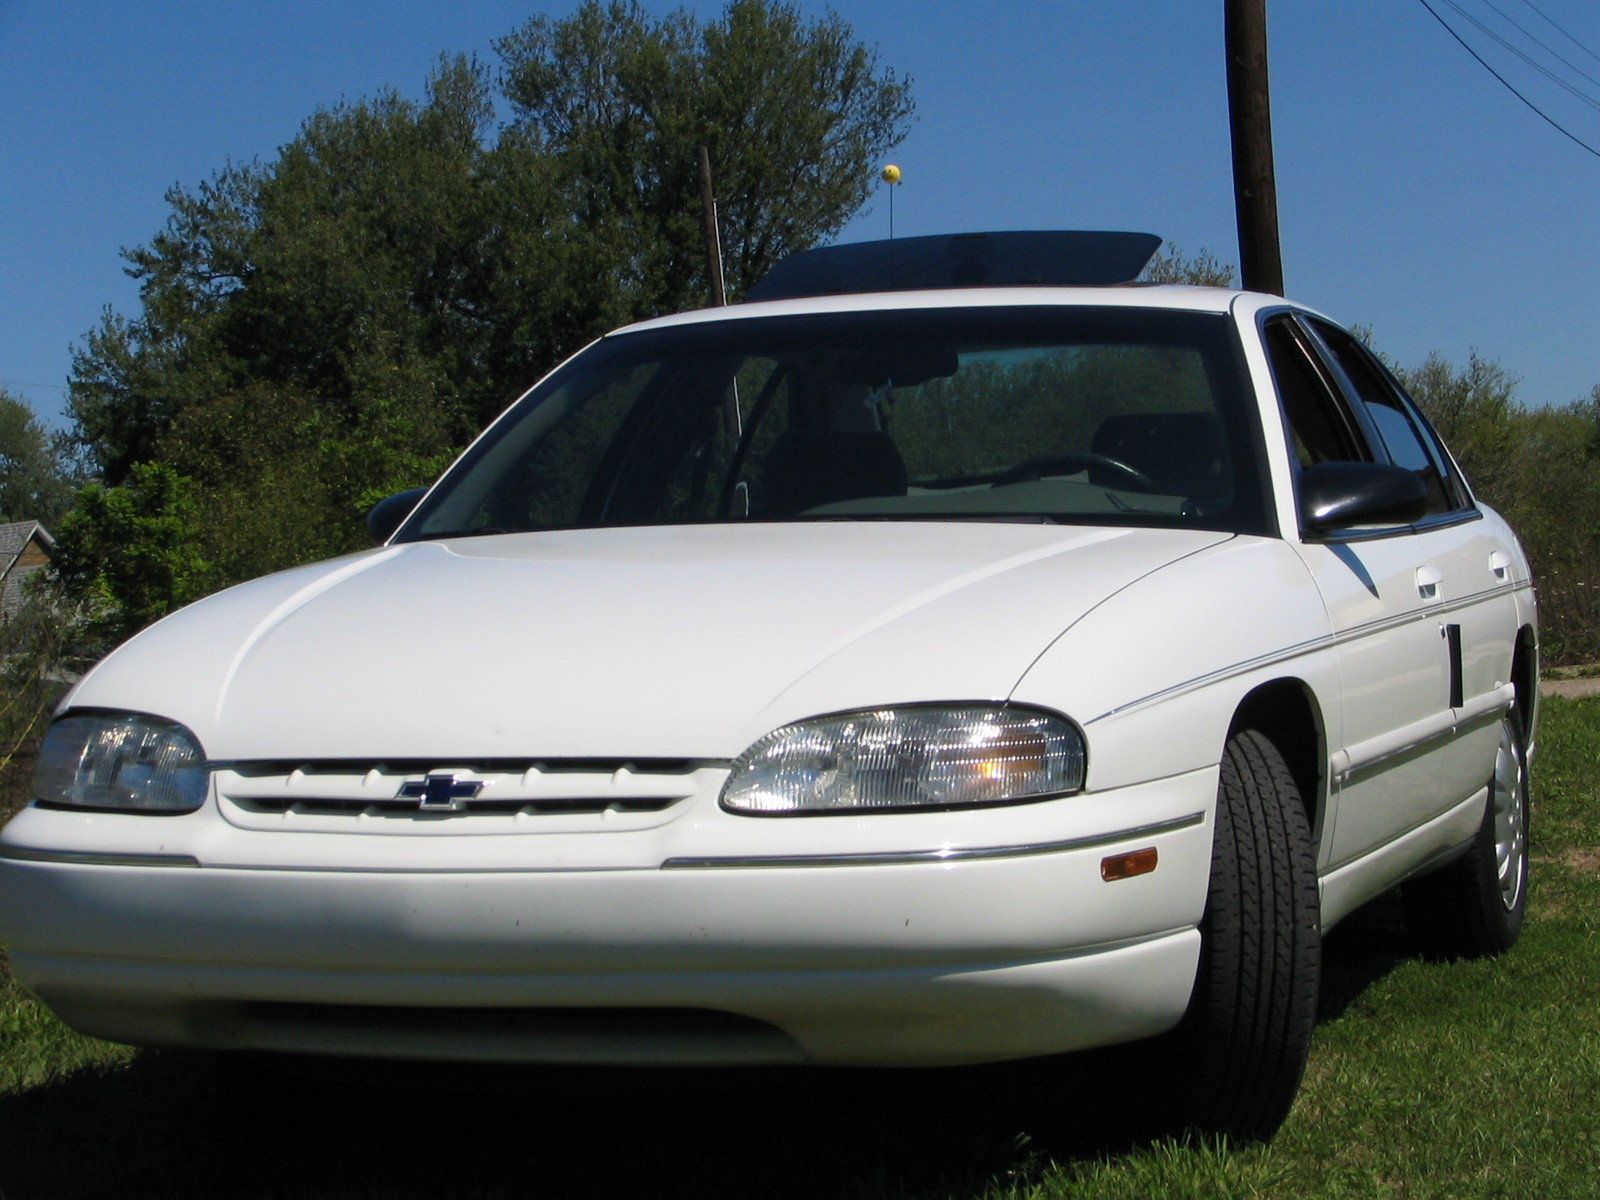 Picture of 1999 Chevrolet Lumina 4 Dr STD Sedan, exterior